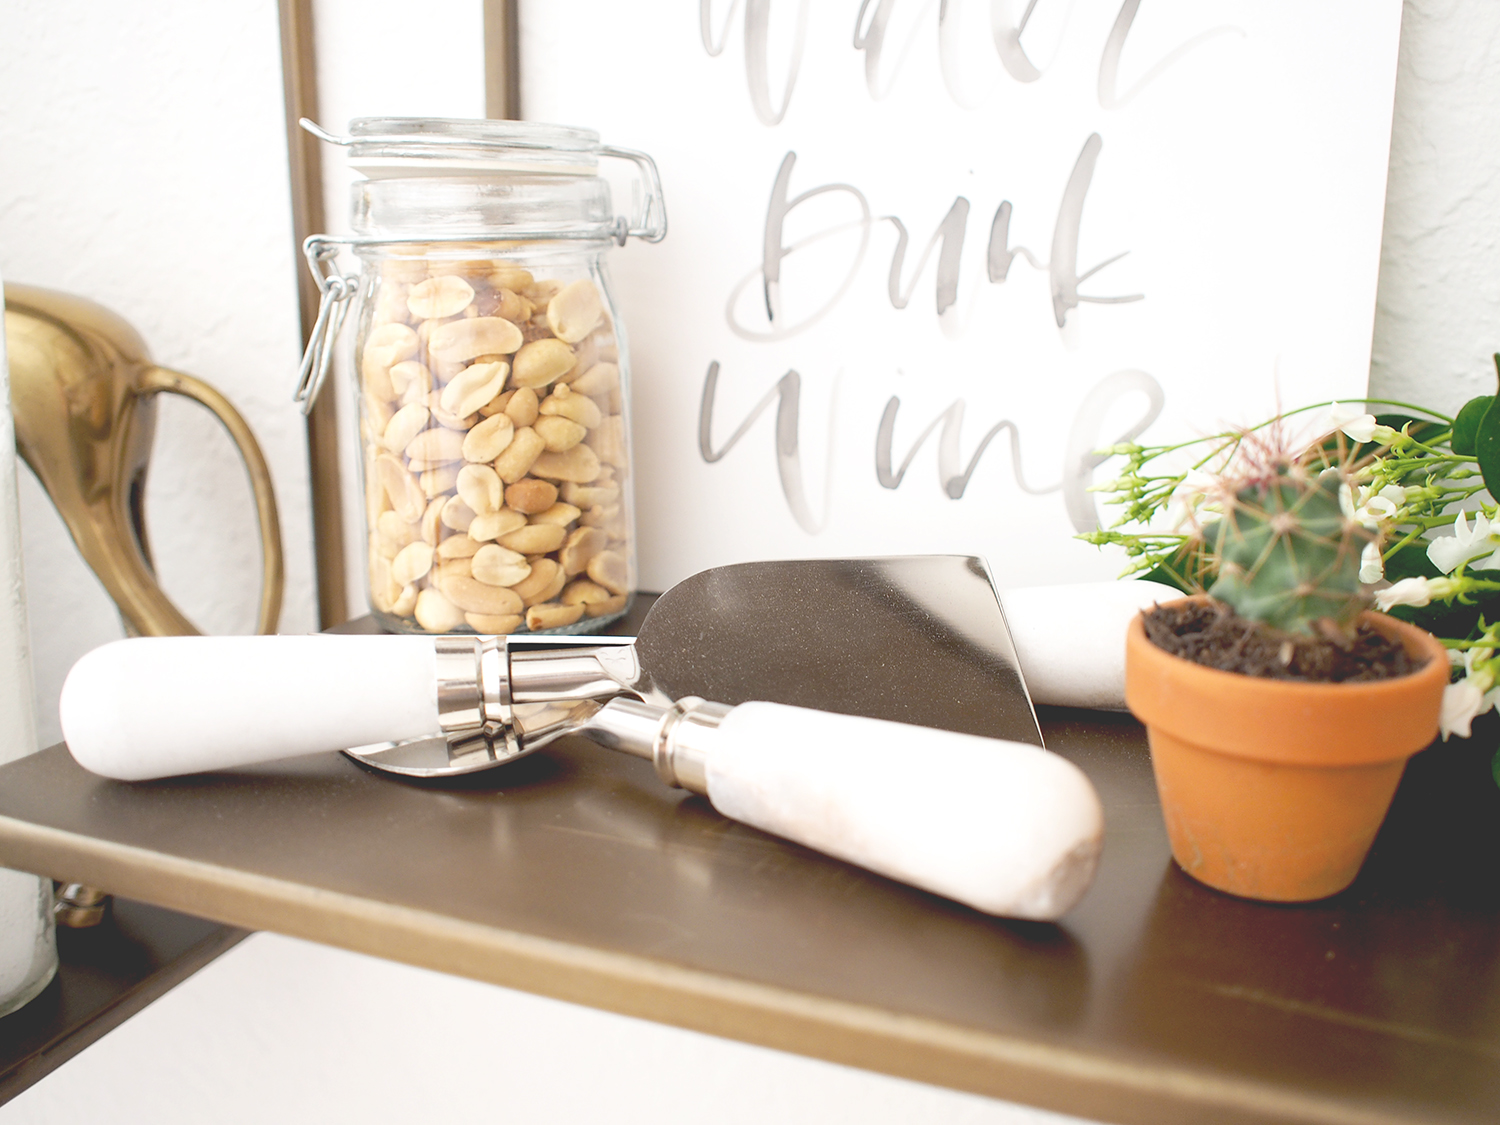 The best look cheese knives i've seen in a long time, from Pottery Barn | A Fabulous Fete